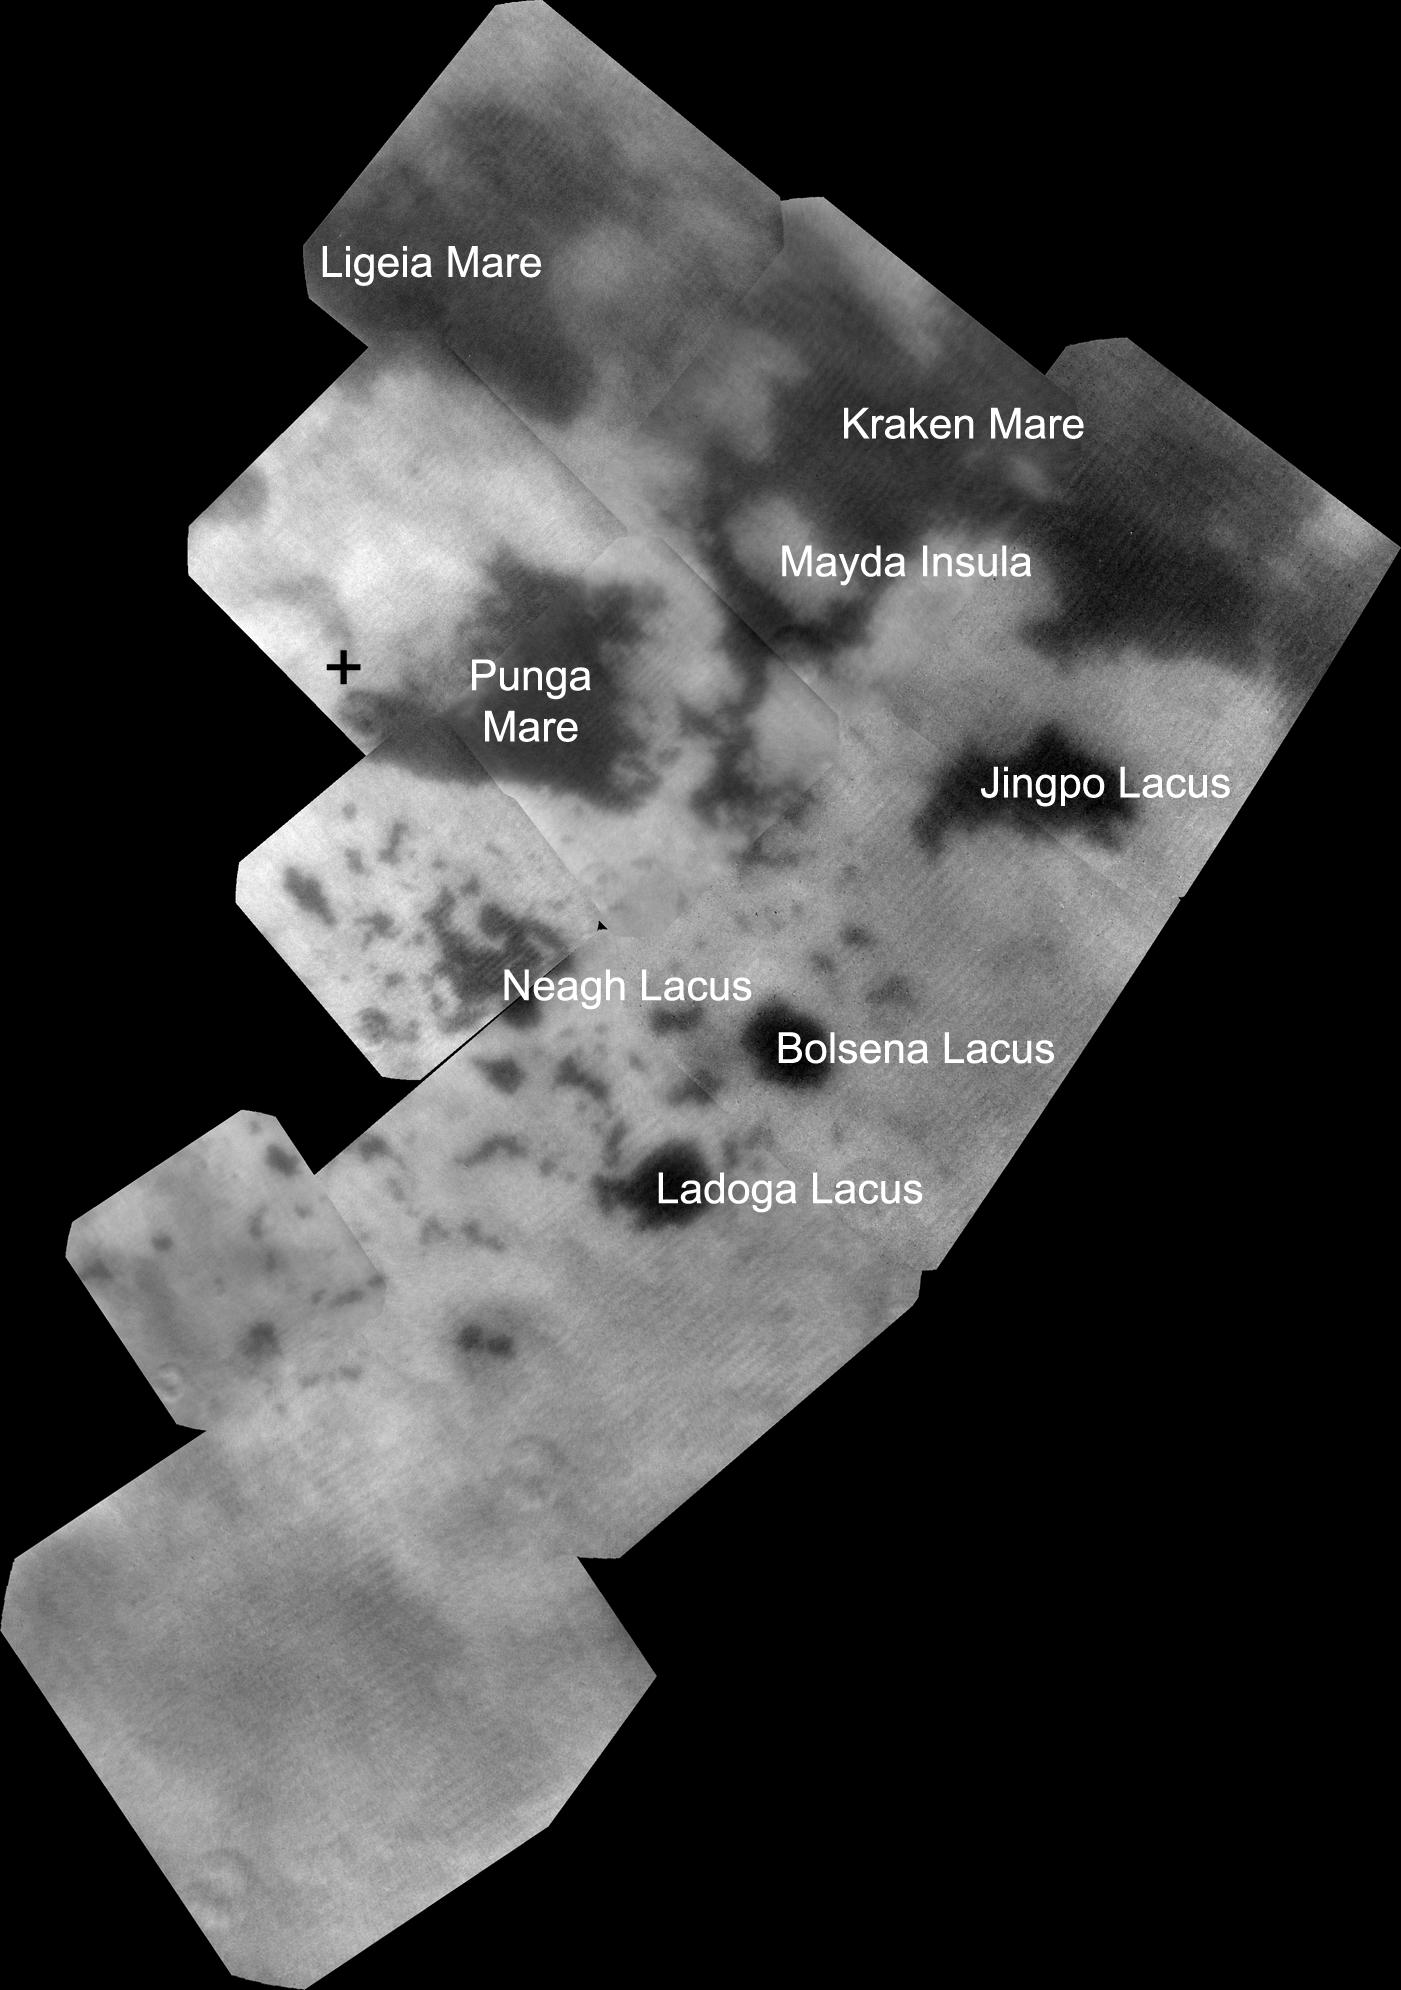 The vast hydrocarbon seas and lakes (dark shapes) near the north pole of Saturn's moon Titan sprawl out beneath the watchful eye of NASA's Cassini spacecraft.